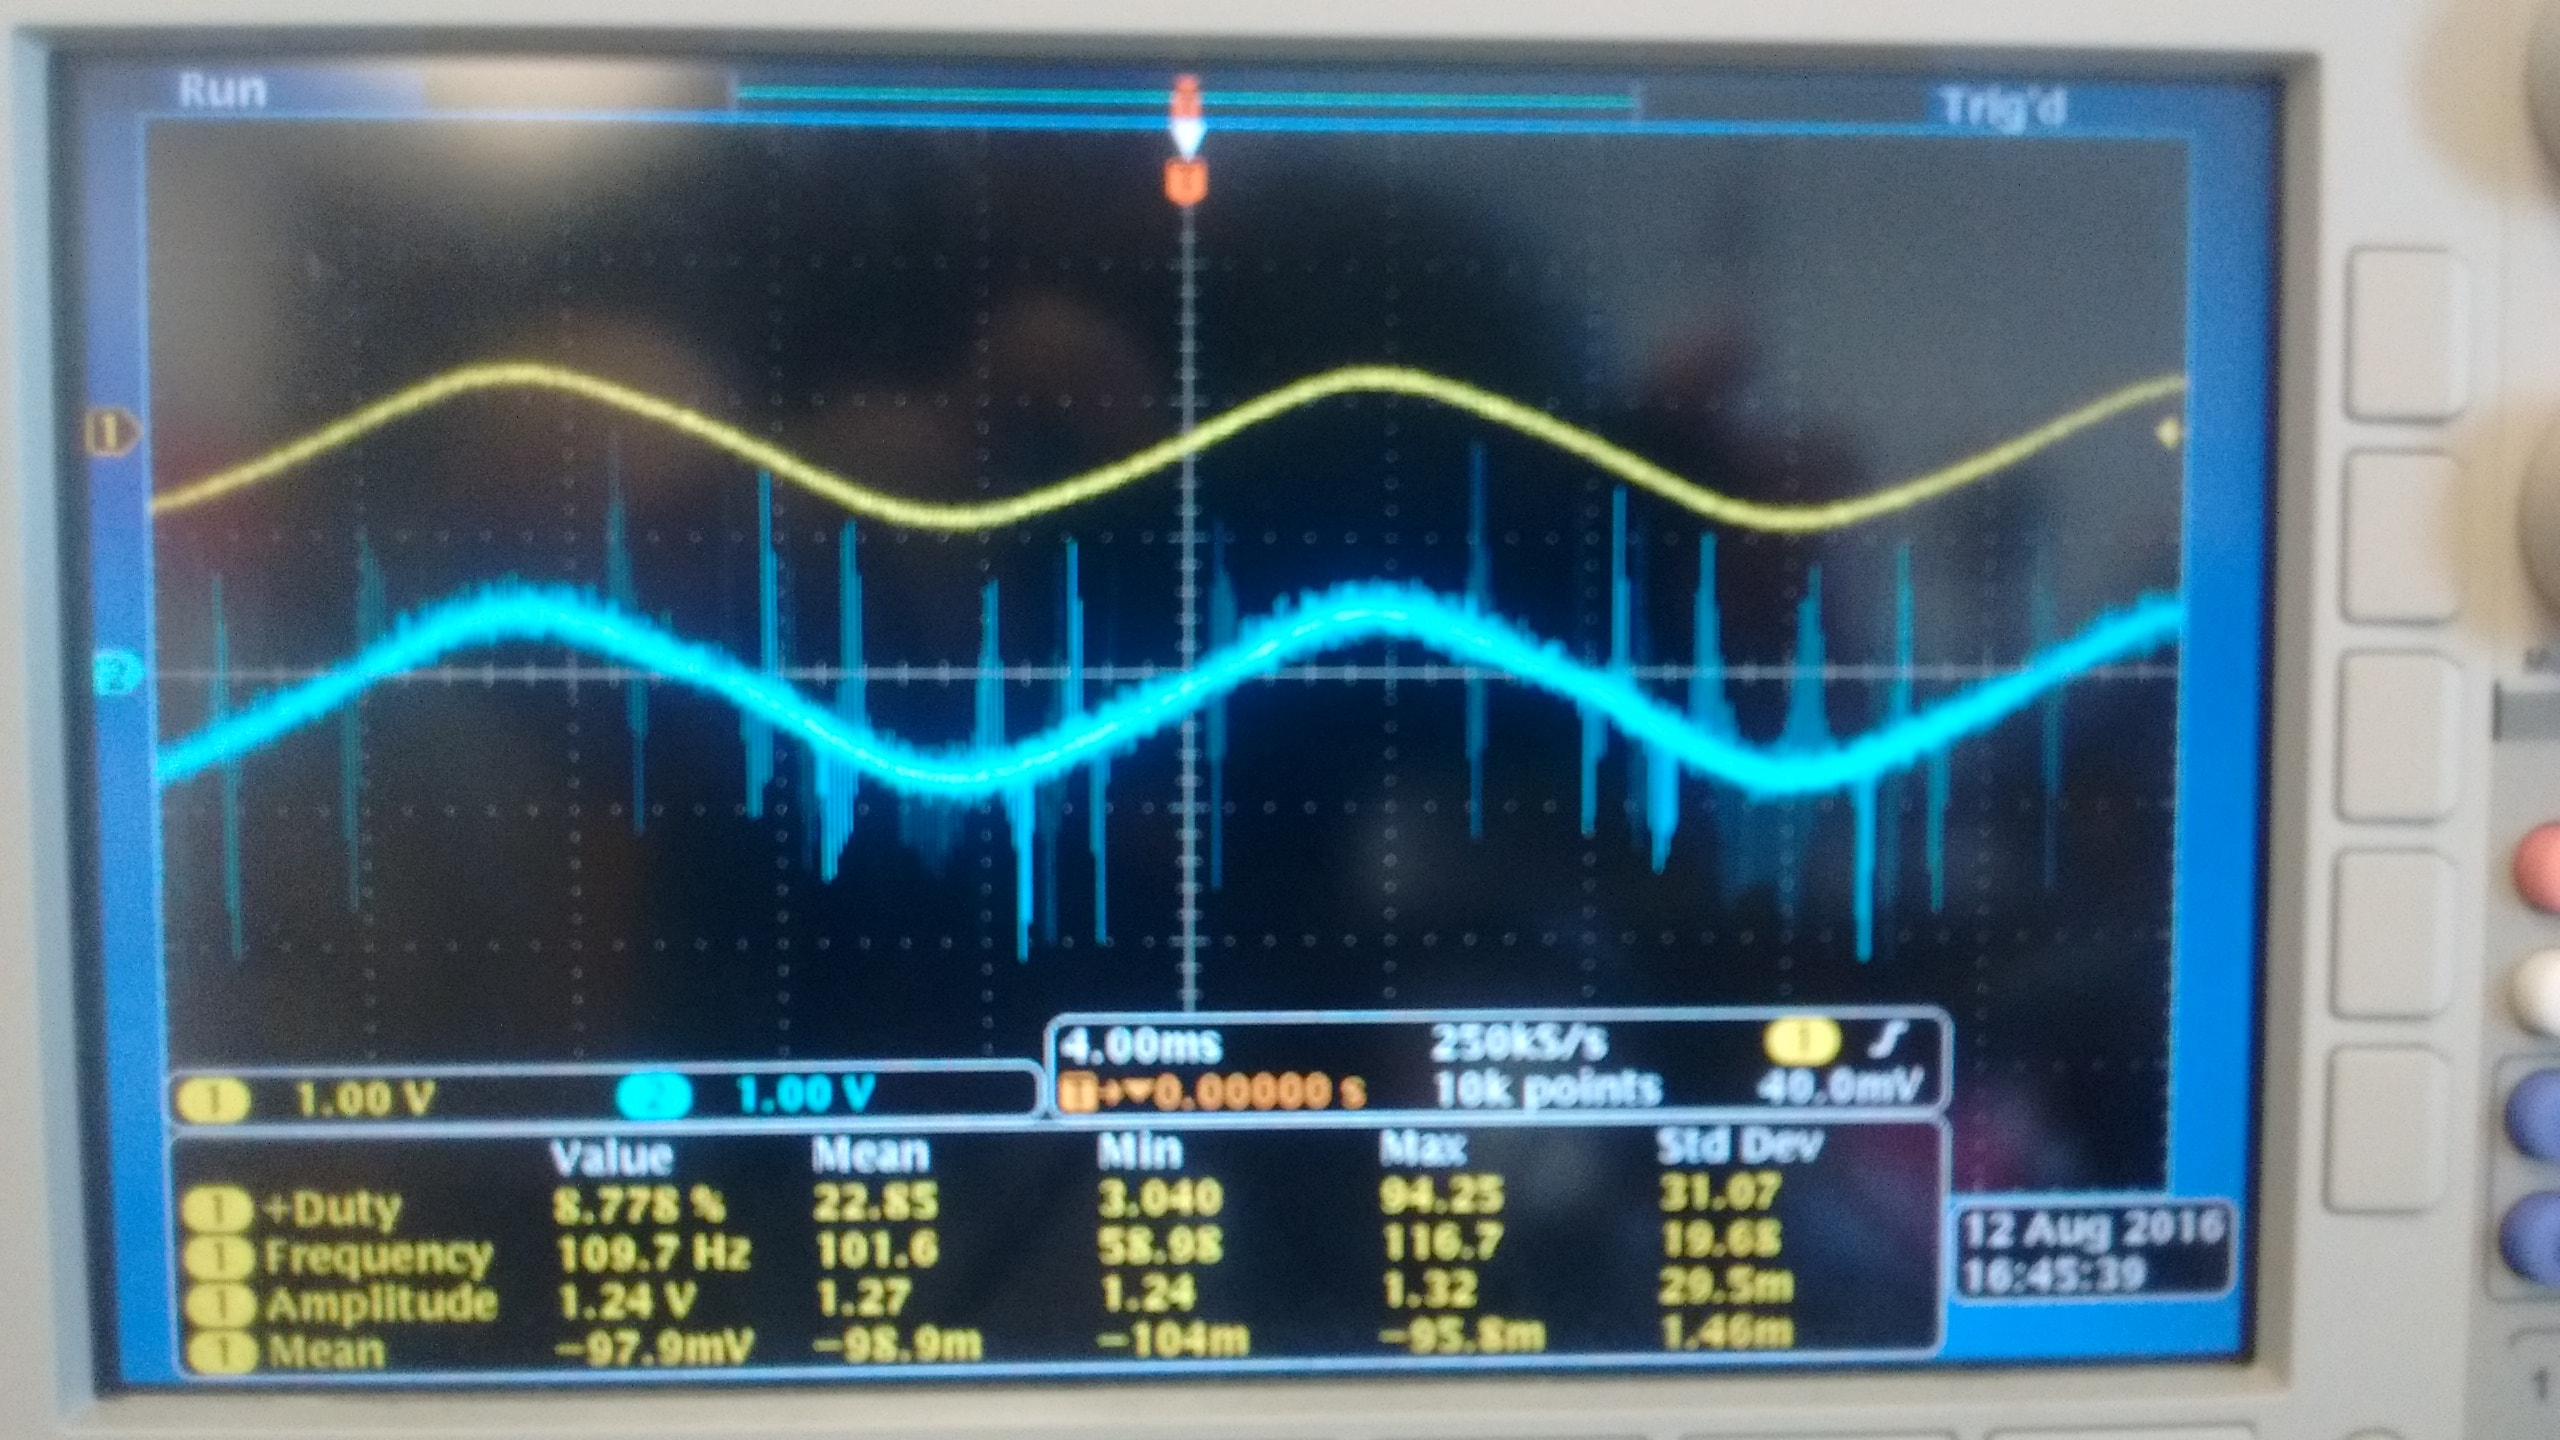 Crosstalk In Ni 9215 Signals Usb 6008 Wiring Diagram As You Can See There Is A Lot Of Noise The B Sensor While Most Often Silent When I Connect Then Both These To My